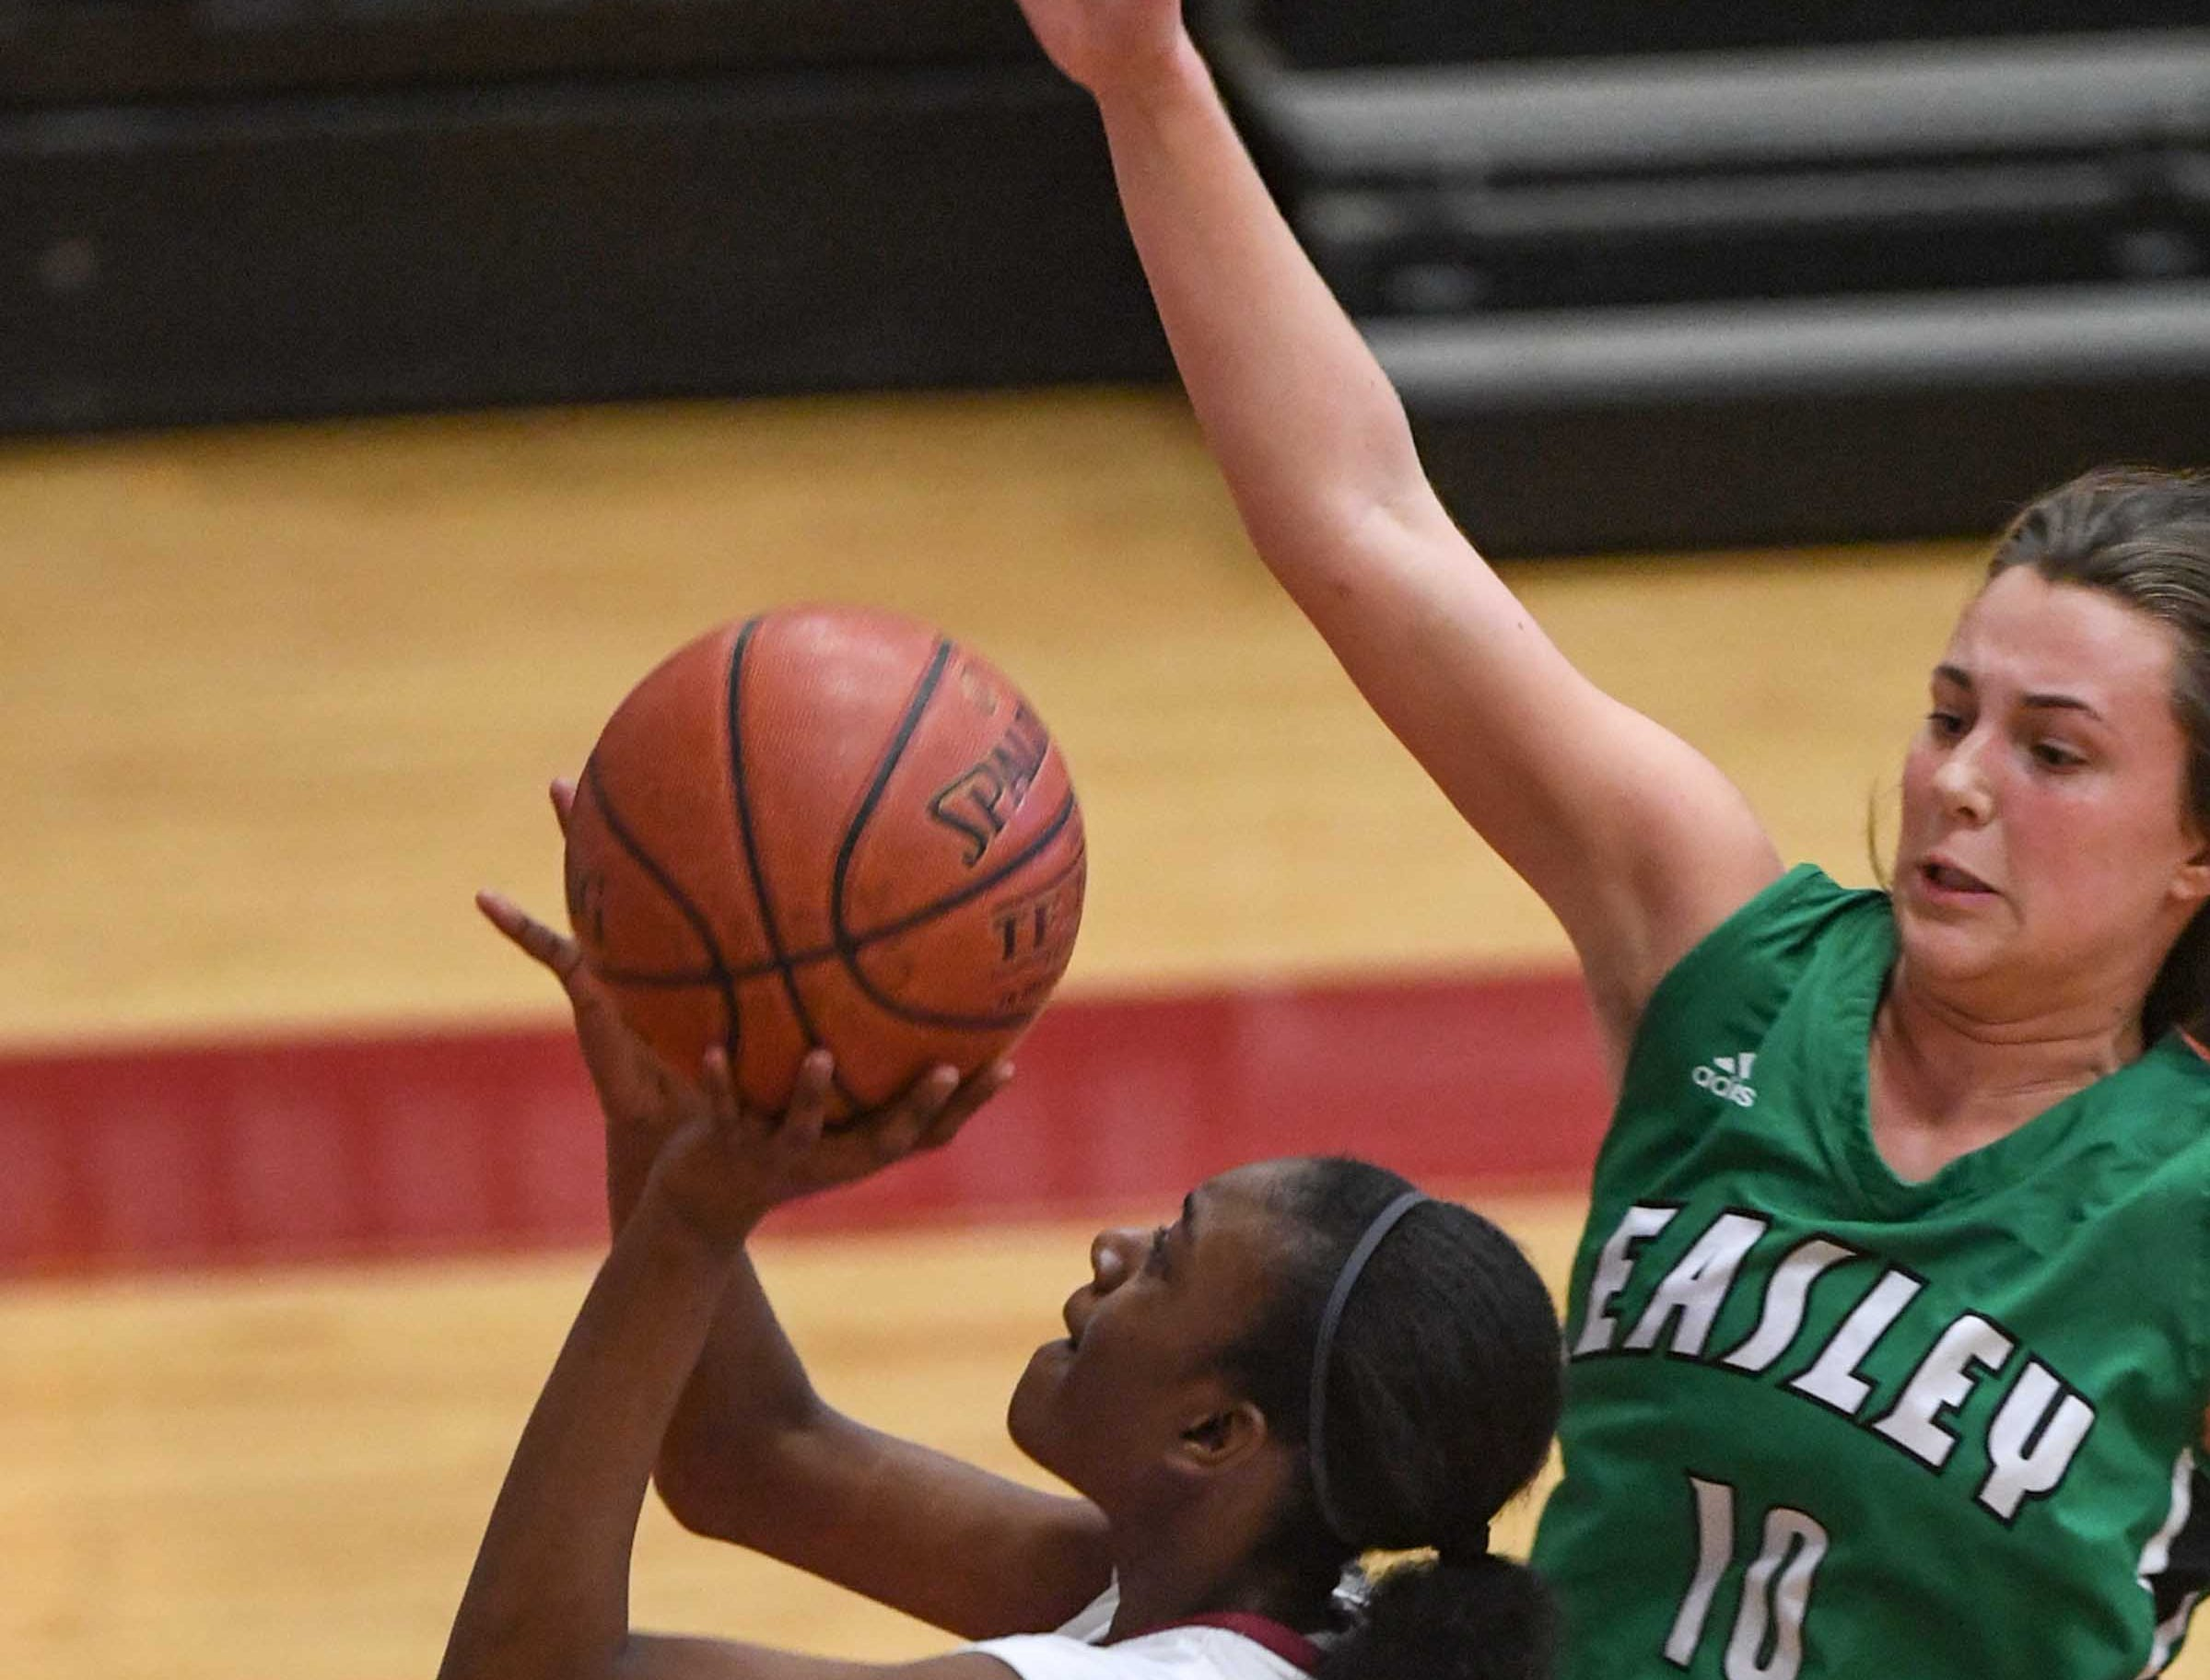 Westside freshman Aziyah Bell(4) shoots near Easley senior Aubrey Lewis(10) during the third quarter at Westside High School in Anderson on Friday.